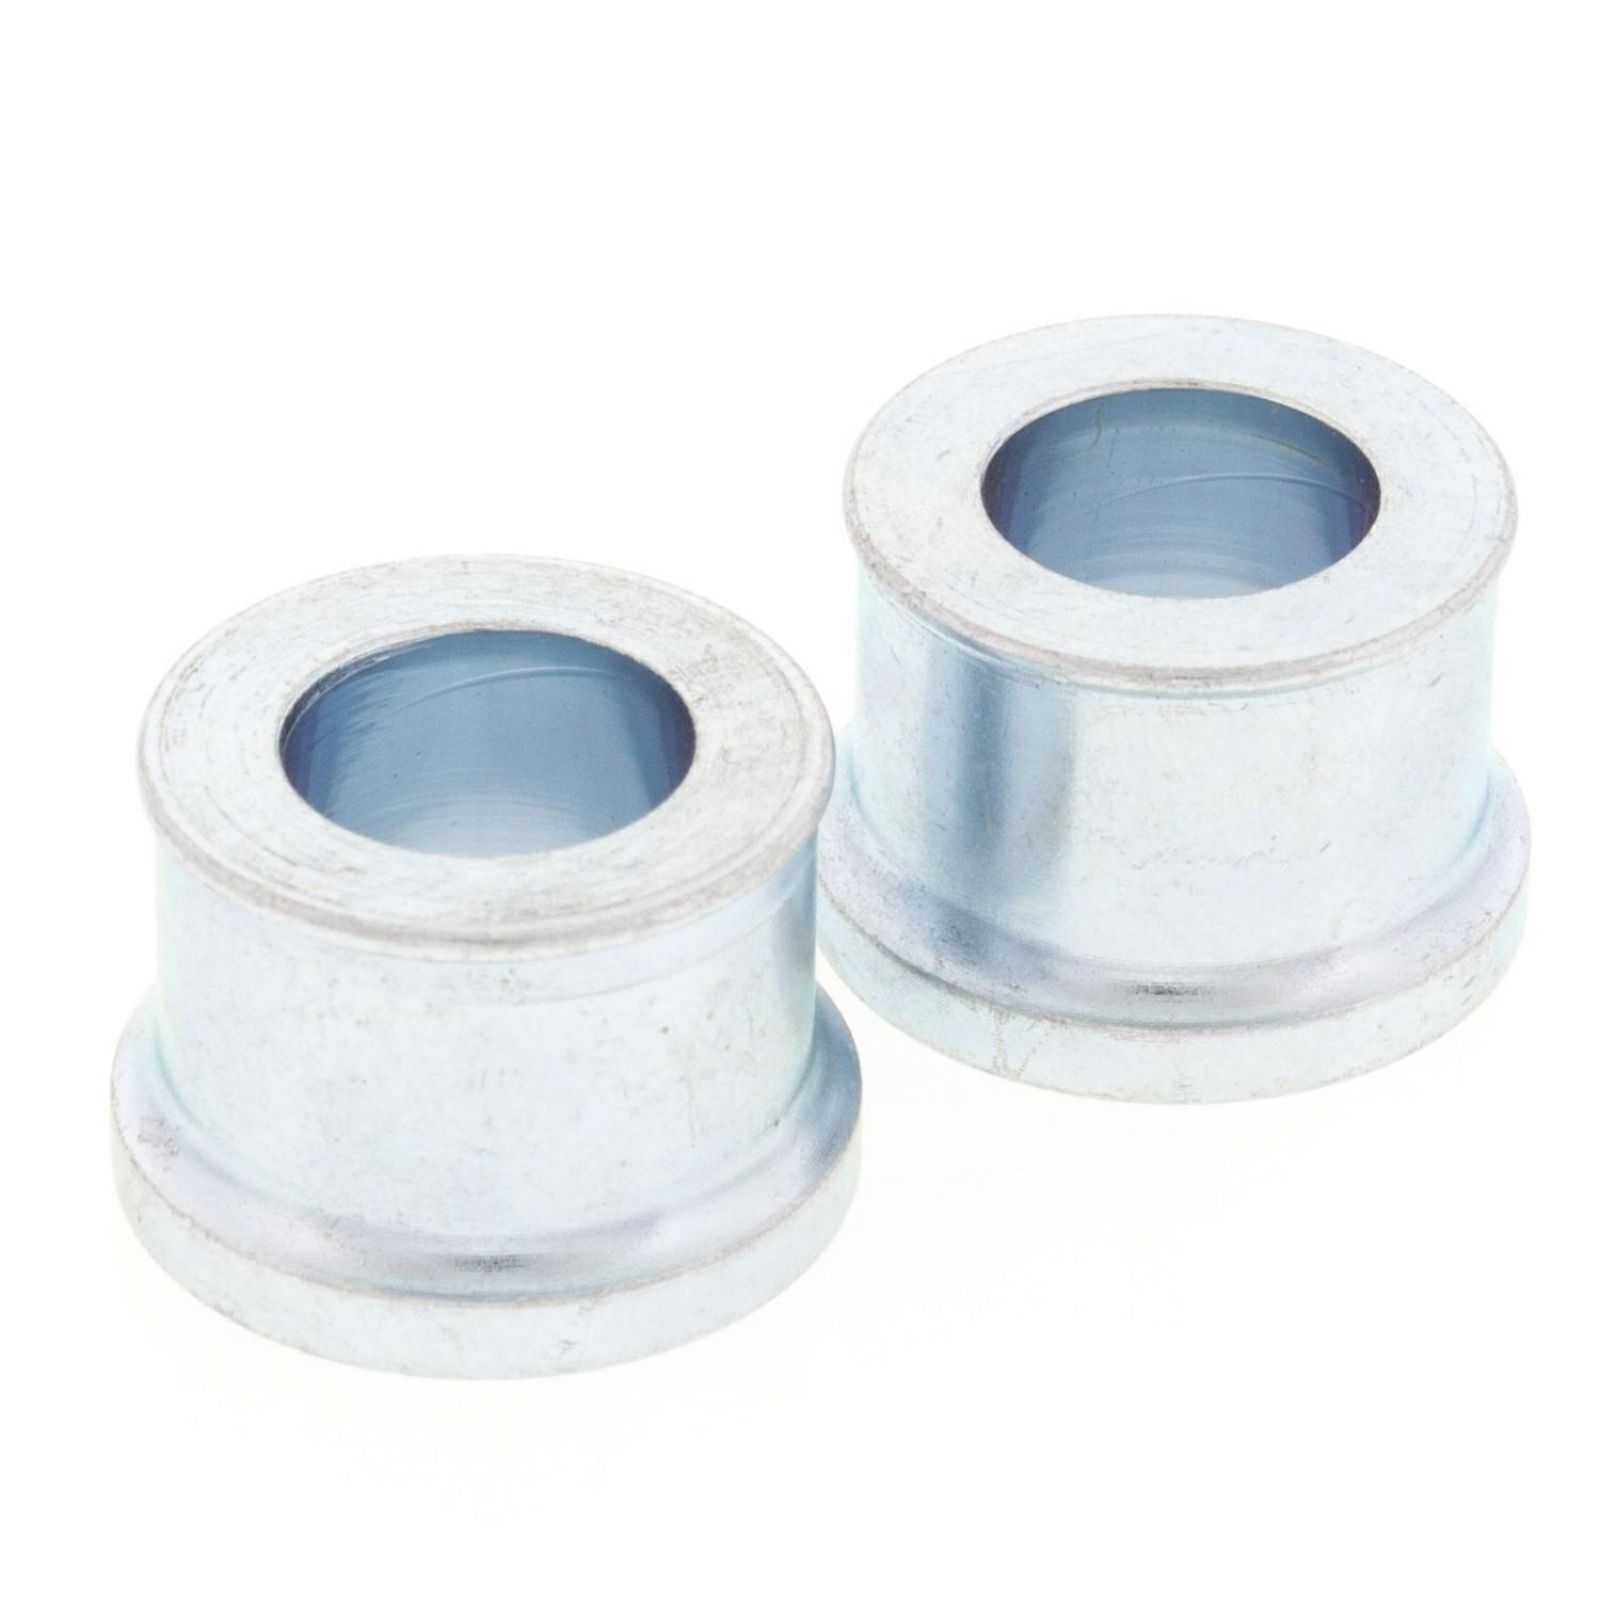 WRP Front Wheel Spacer Kits - WRP111024 image